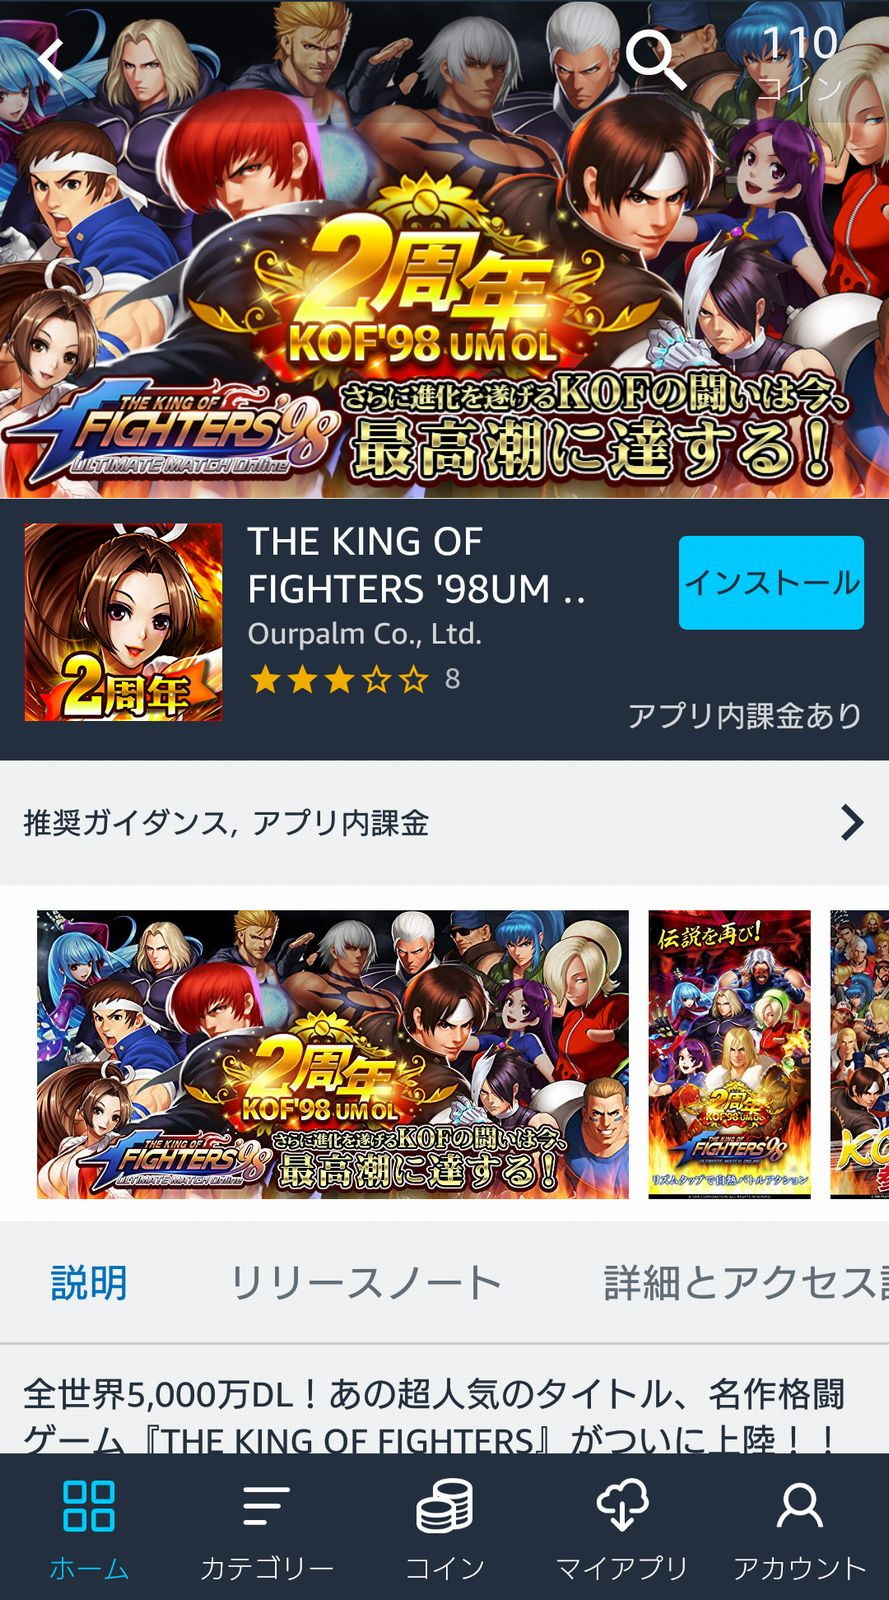 『THE KING OF FIGHTERS 98UM OL for Amazon』はAmazonコインでおトクに課金できる!